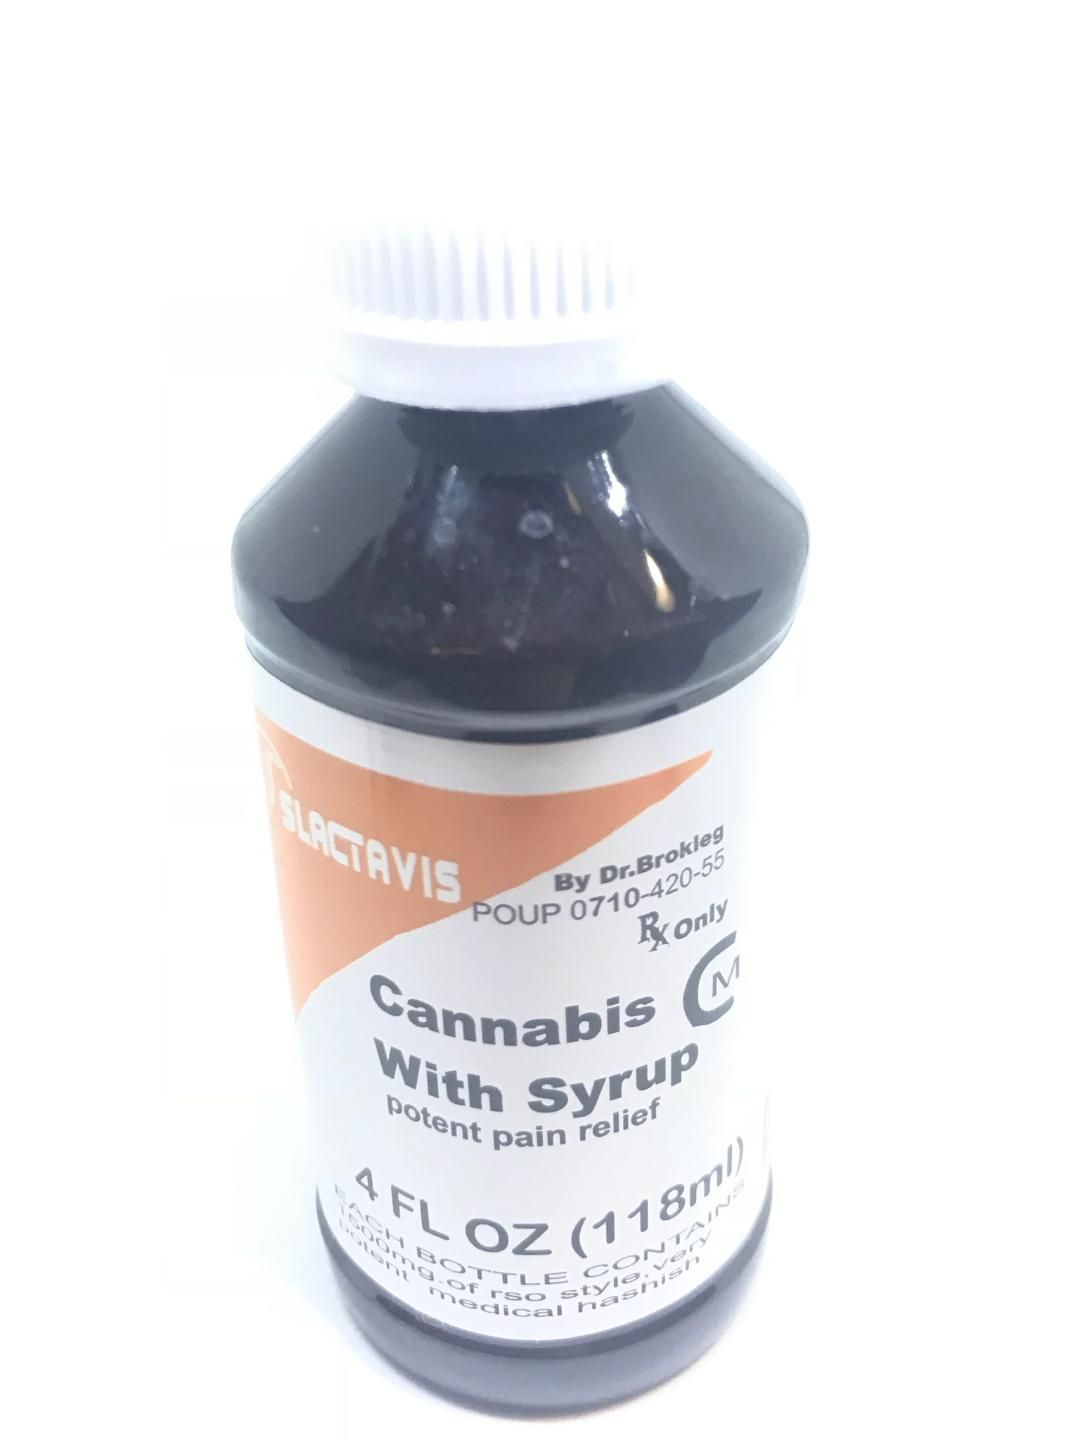 1500mg Slactavis - Cannabis with Syrup